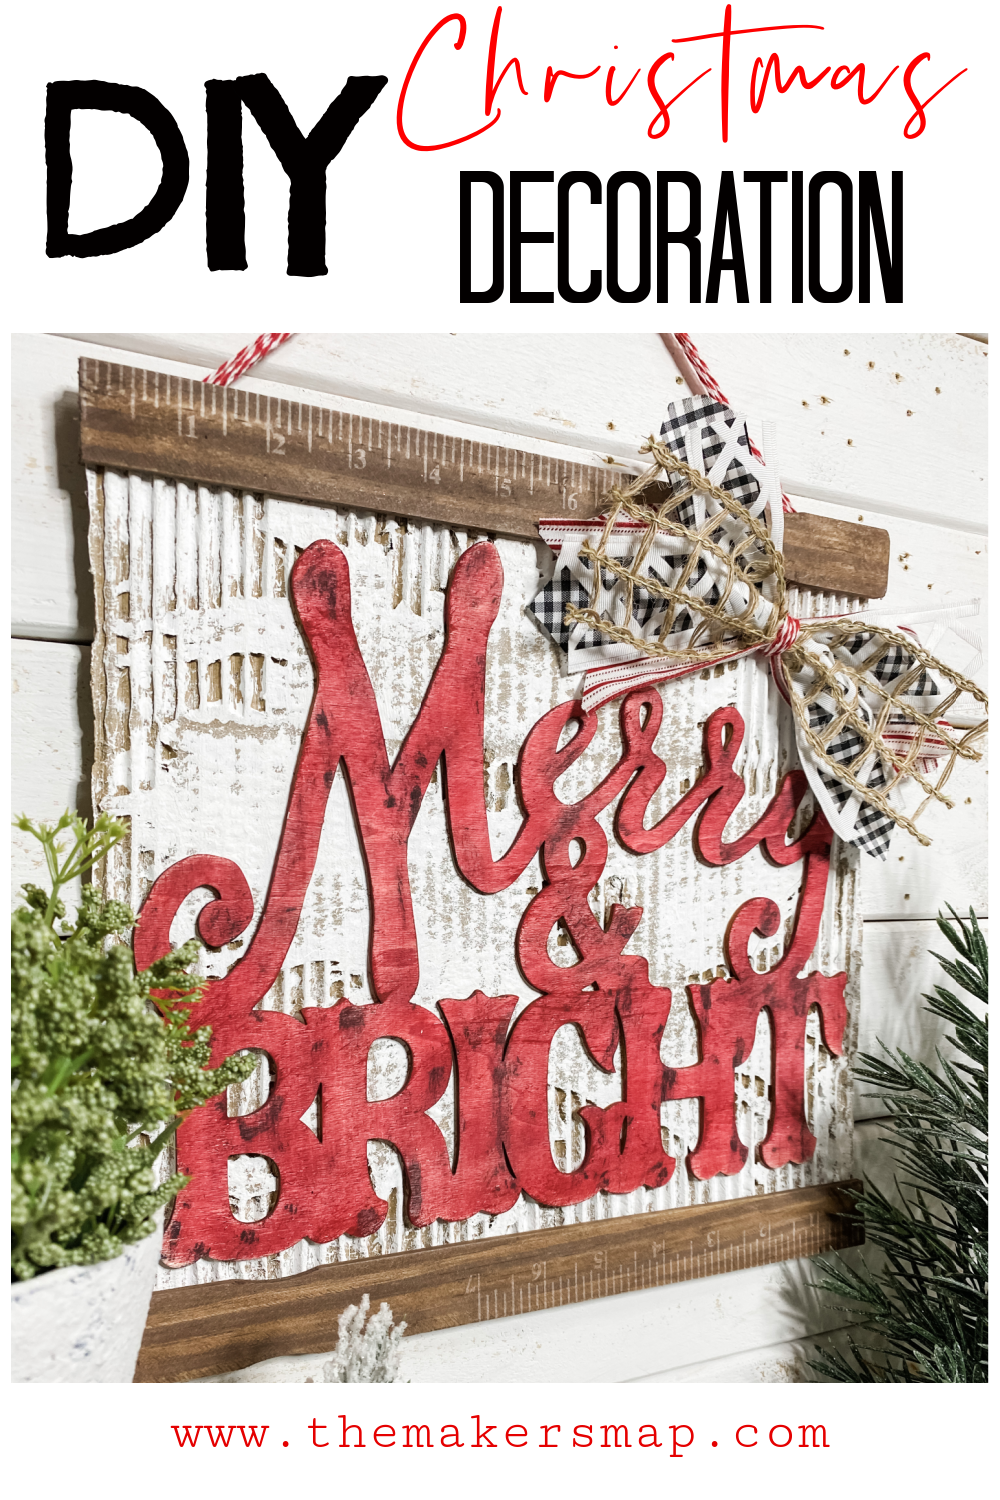 diy christmas decoration cardboard